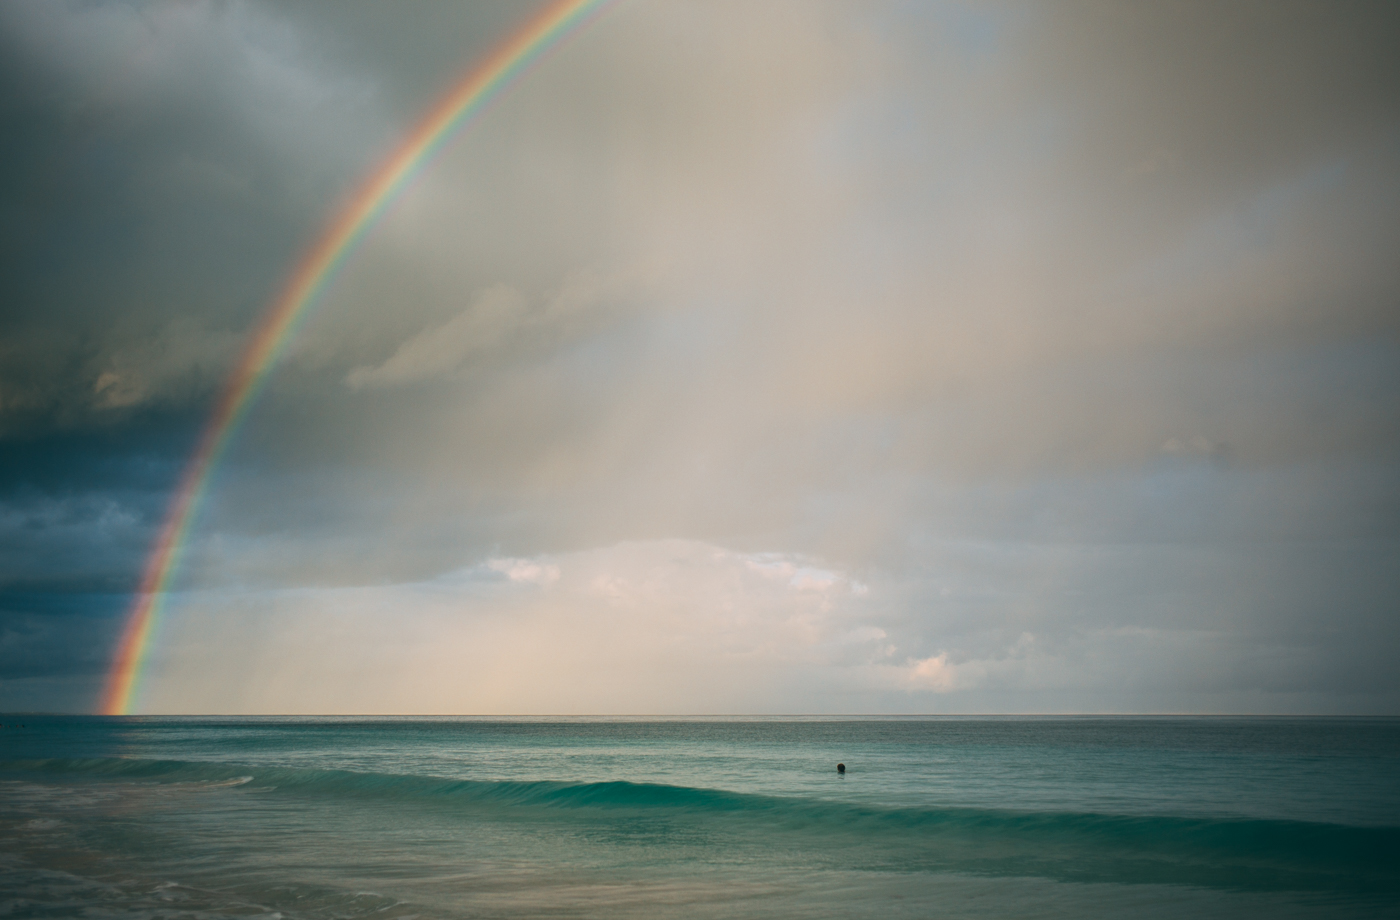 Swimming under the rainbow